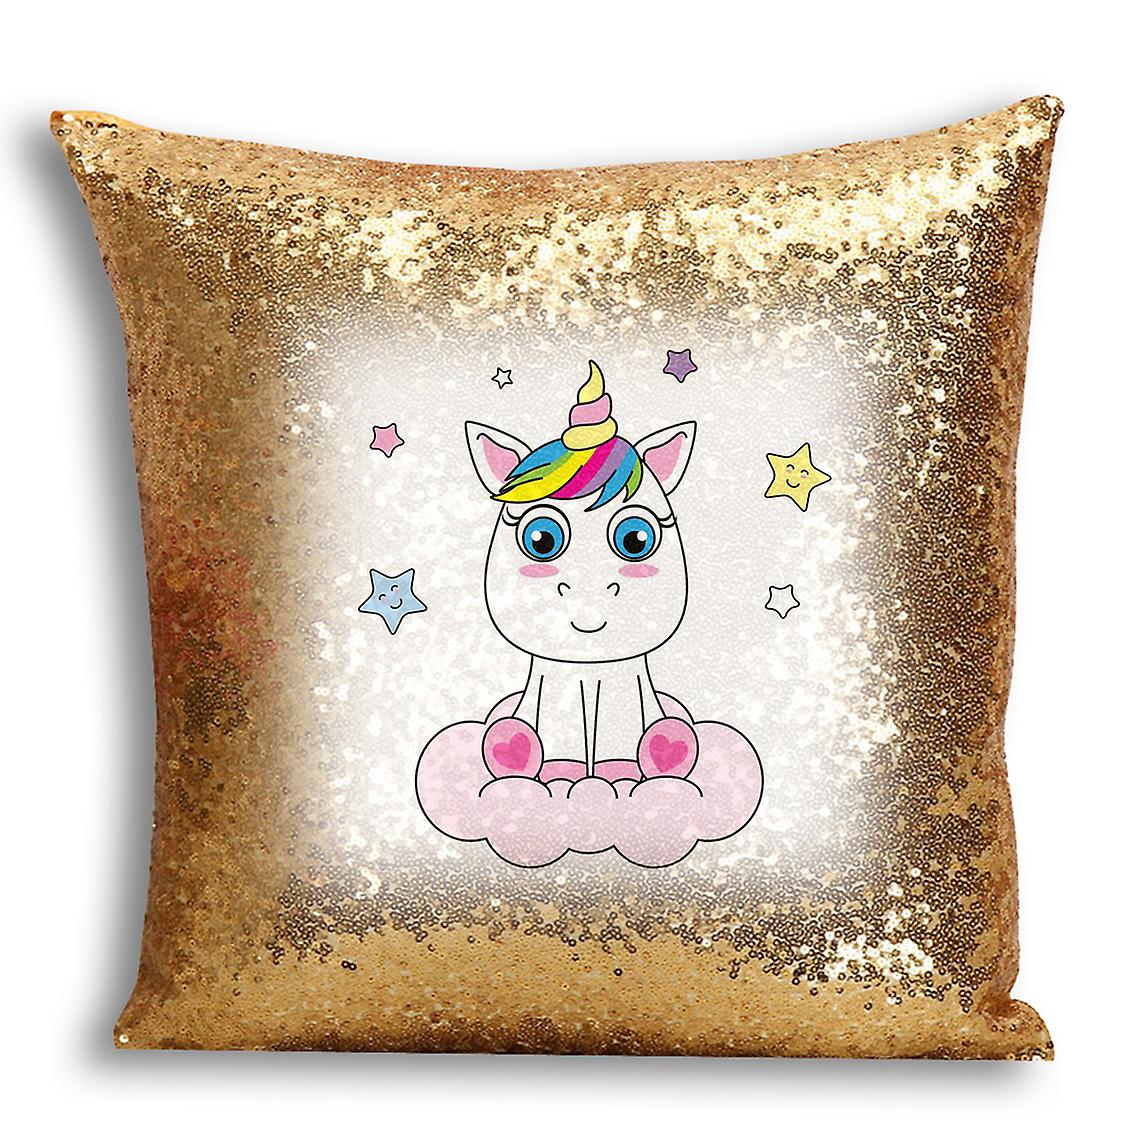 Gold Cover tronixsUnicorn Printed Inserted CushionPillow I Design Home 8 With Decor For Sequin mYgbfIyv76